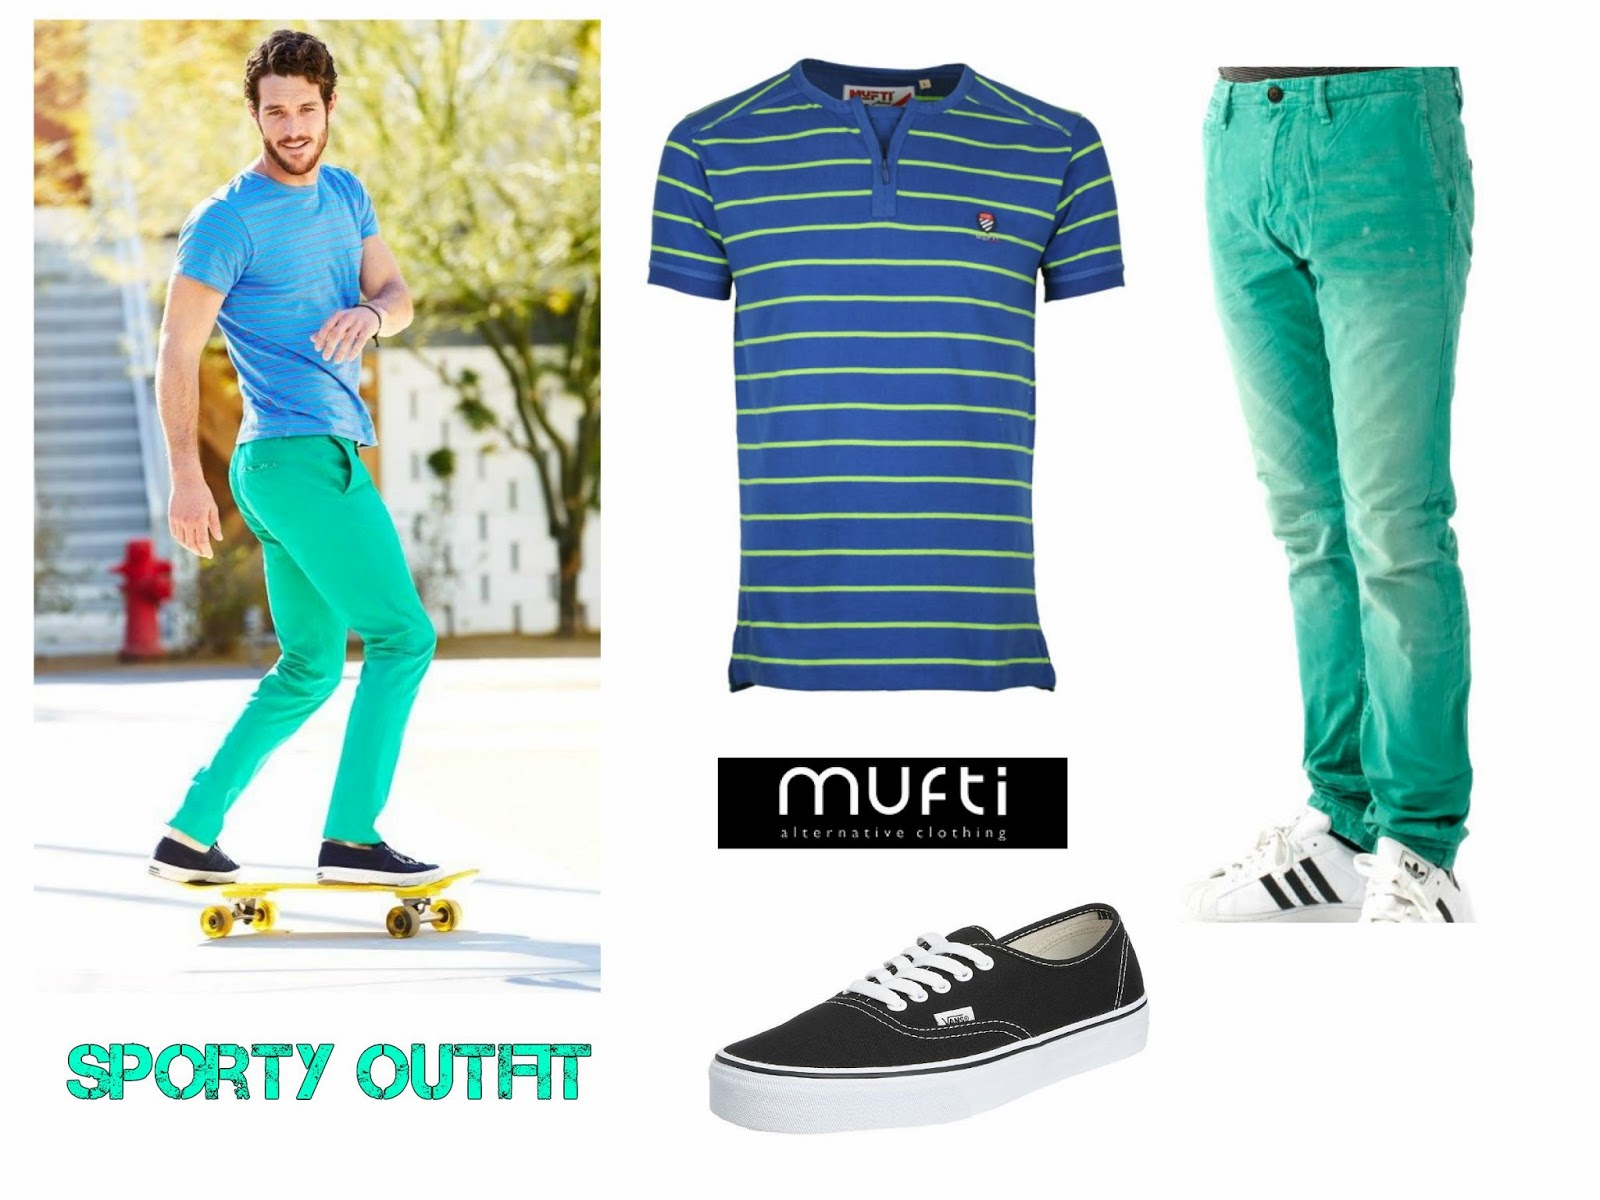 Mufti t-shirt in peppy colour, striped mufti t-shirt, sport wear mufti tee